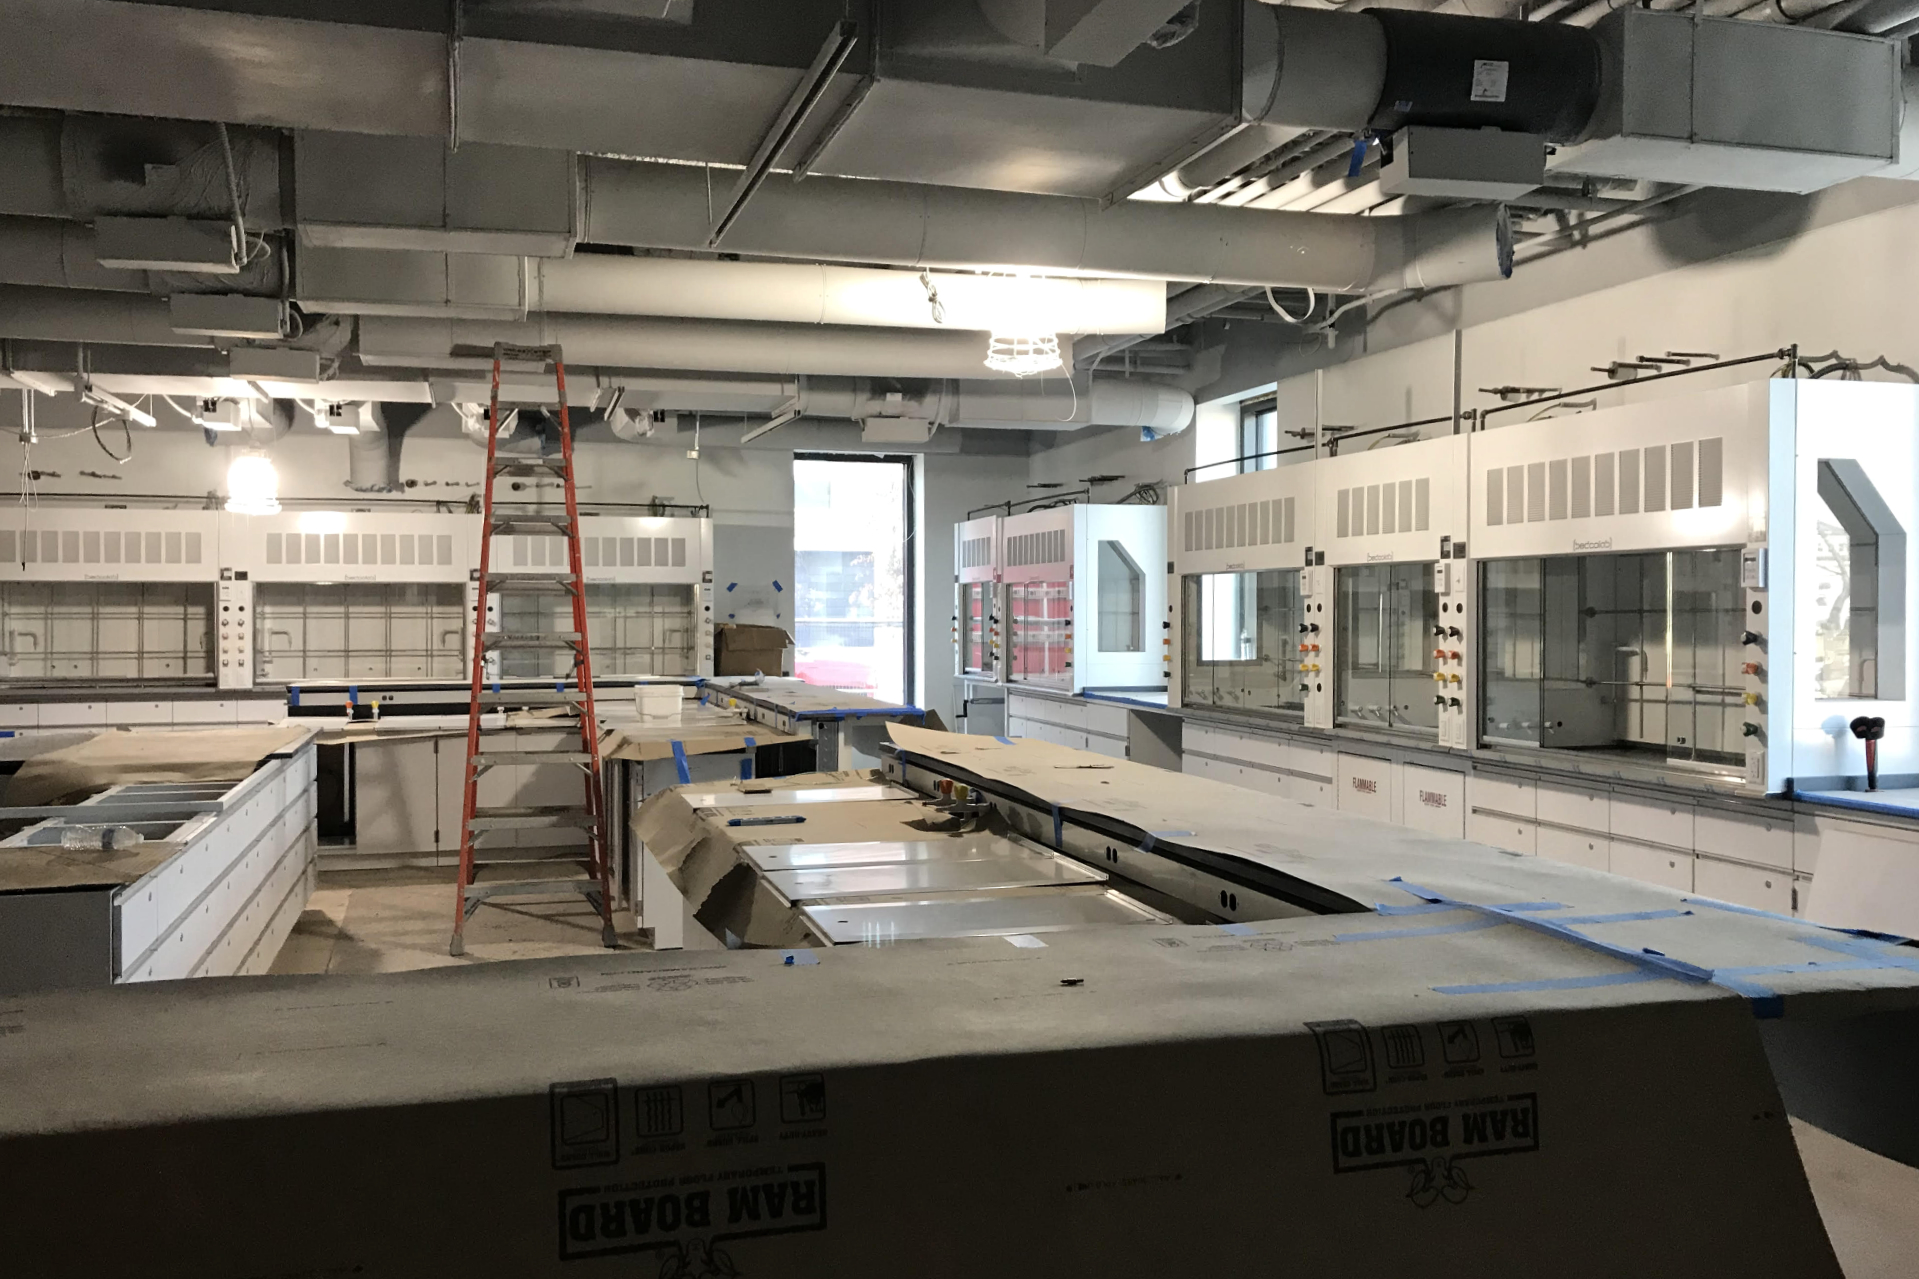 Glass-fronted fume hoods are among the science equipment newly installed in this first-floor biology lab. Students will work at the counter at center, with their professor using the smaller counter at left. (Courtesy of Consigl Construction)